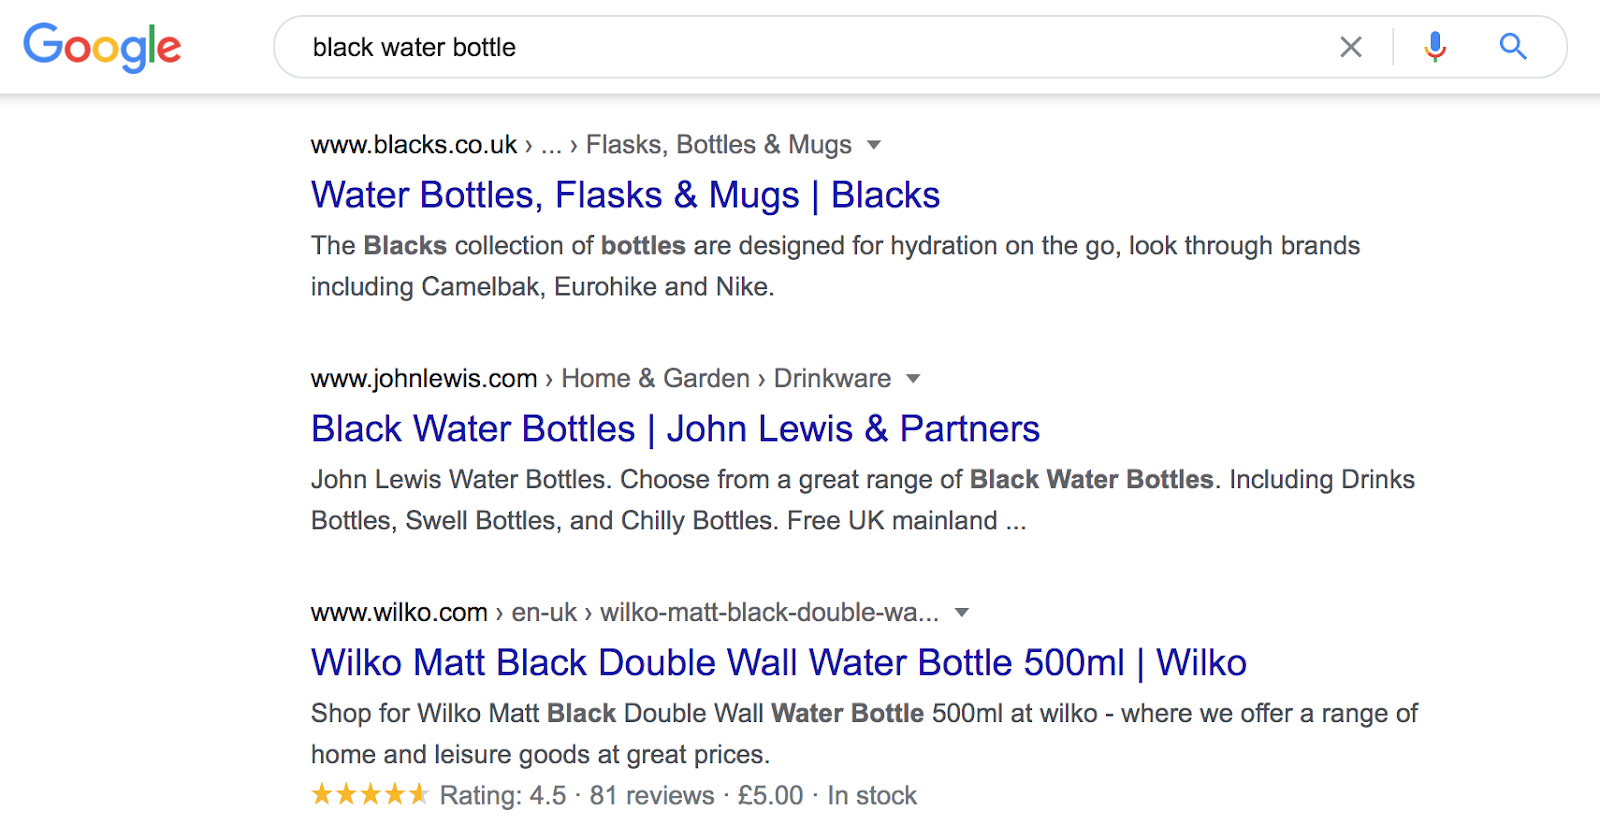 """The image shows a Google search page, with the text """"black water bottle"""" written in the search bar. The first result is from blacks.co.uk website and the title reads """"Waterbottles flasks & mugs"""". The second result is from John Lewis.com and reads """"Black water bottles"""". The third result is from Wilko.com and reads """"Wilko matt black double wall water bottle"""". Under this text, there are 4,5 yellow stars and the copy """"Rating: 4.5 - 81 reviews""""."""